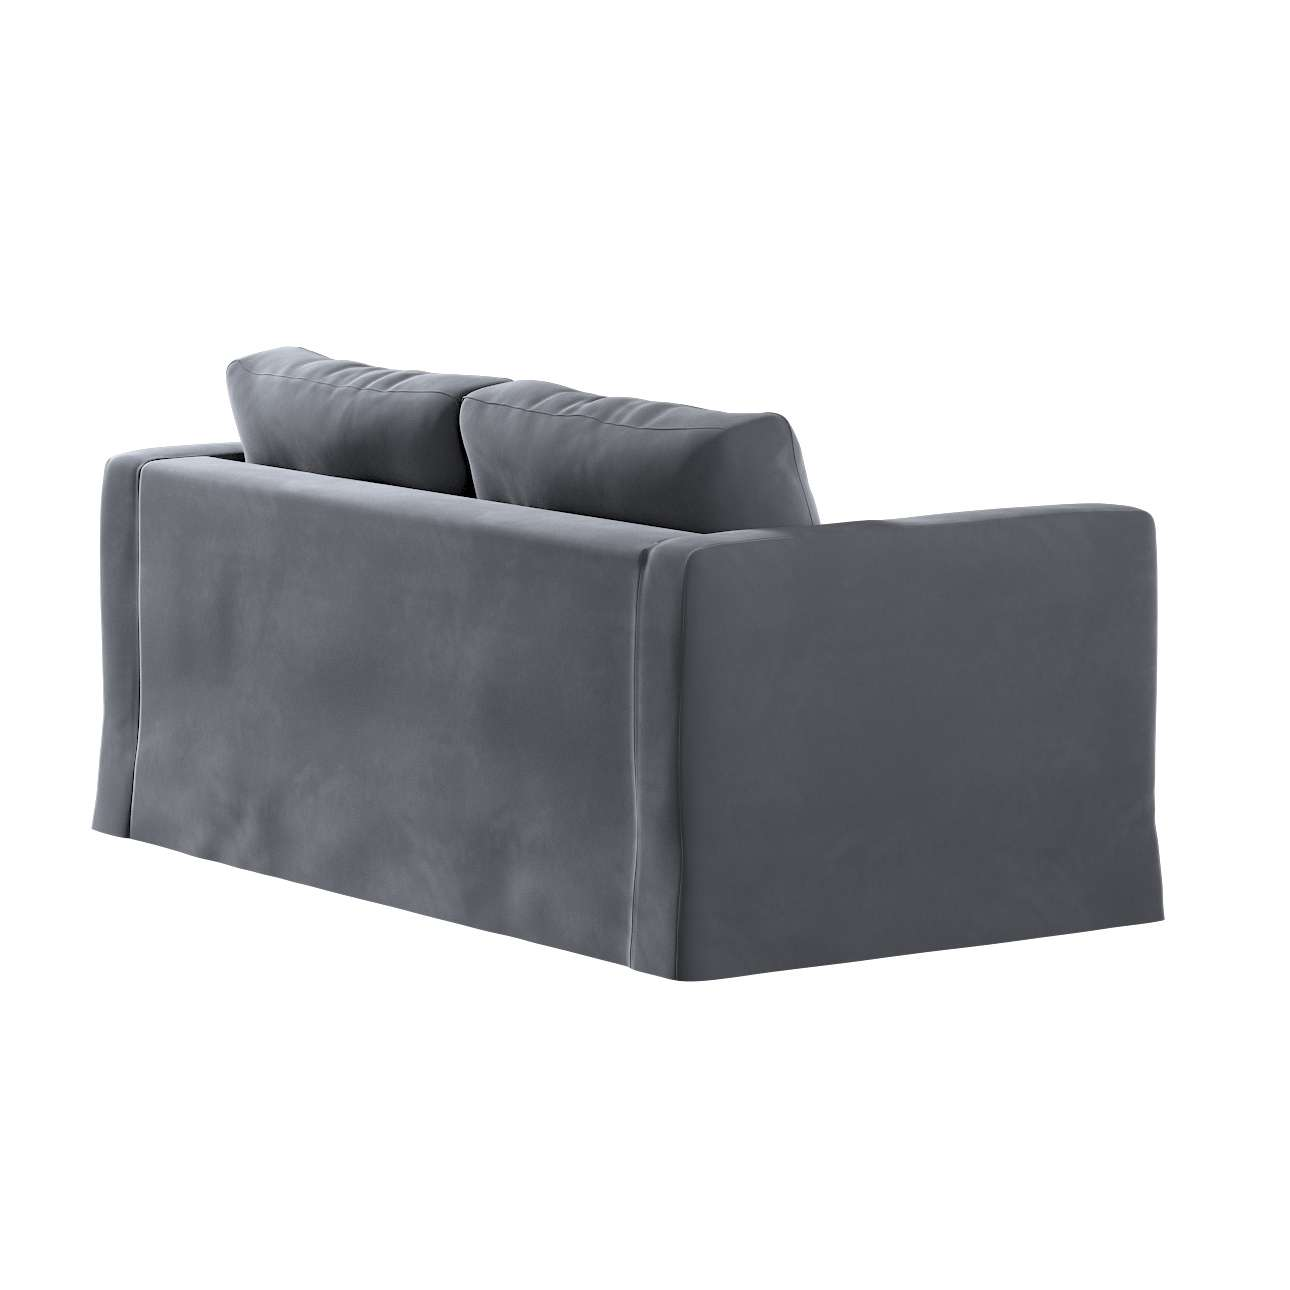 Floor length Karlstad 2-seater sofa cover in collection Velvet, fabric: 704-12